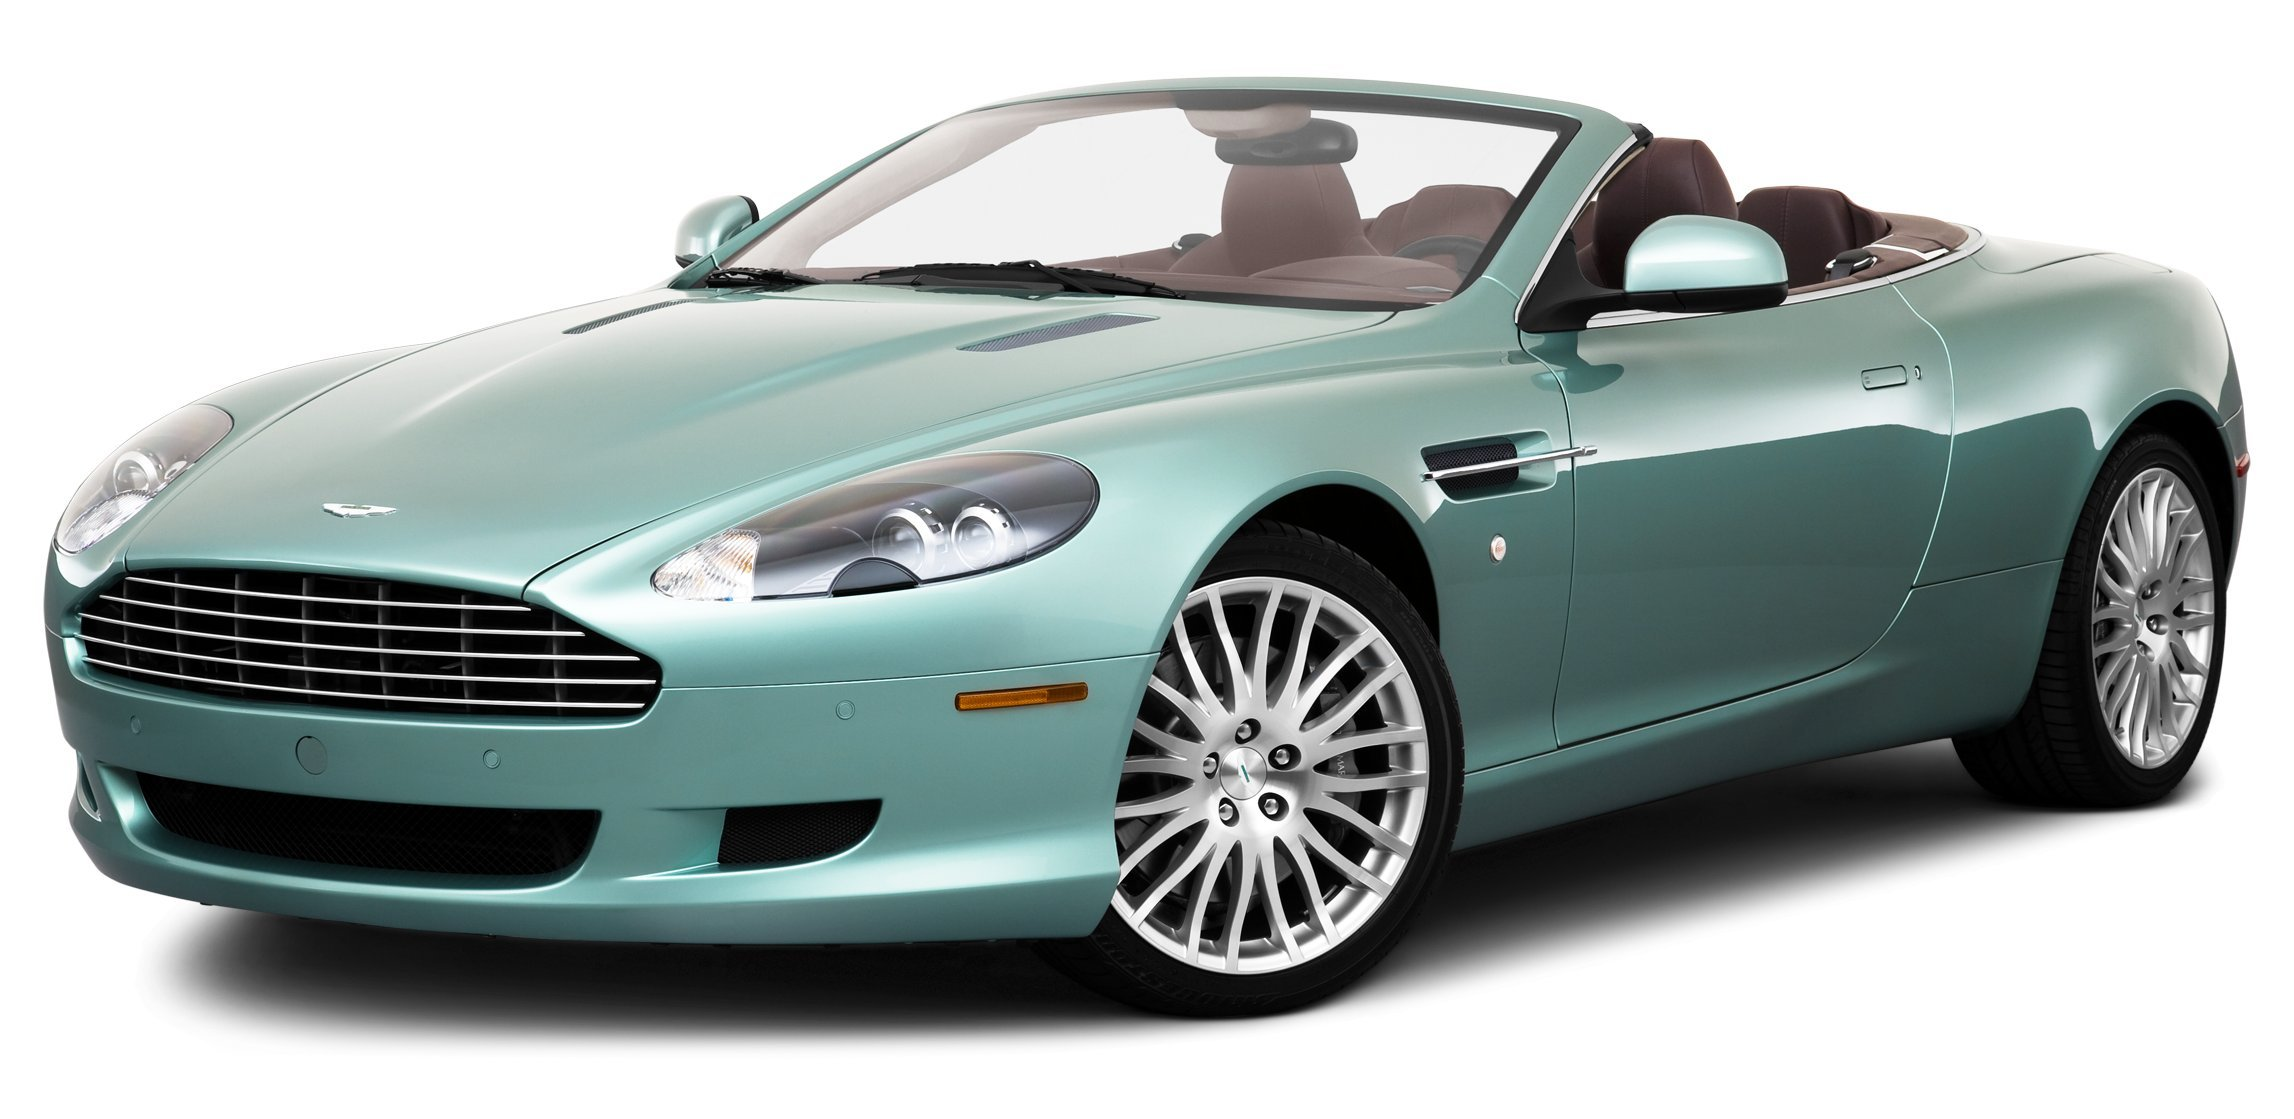 Amazon 2010 Aston Martin DB9 Reviews and Specs Vehicles